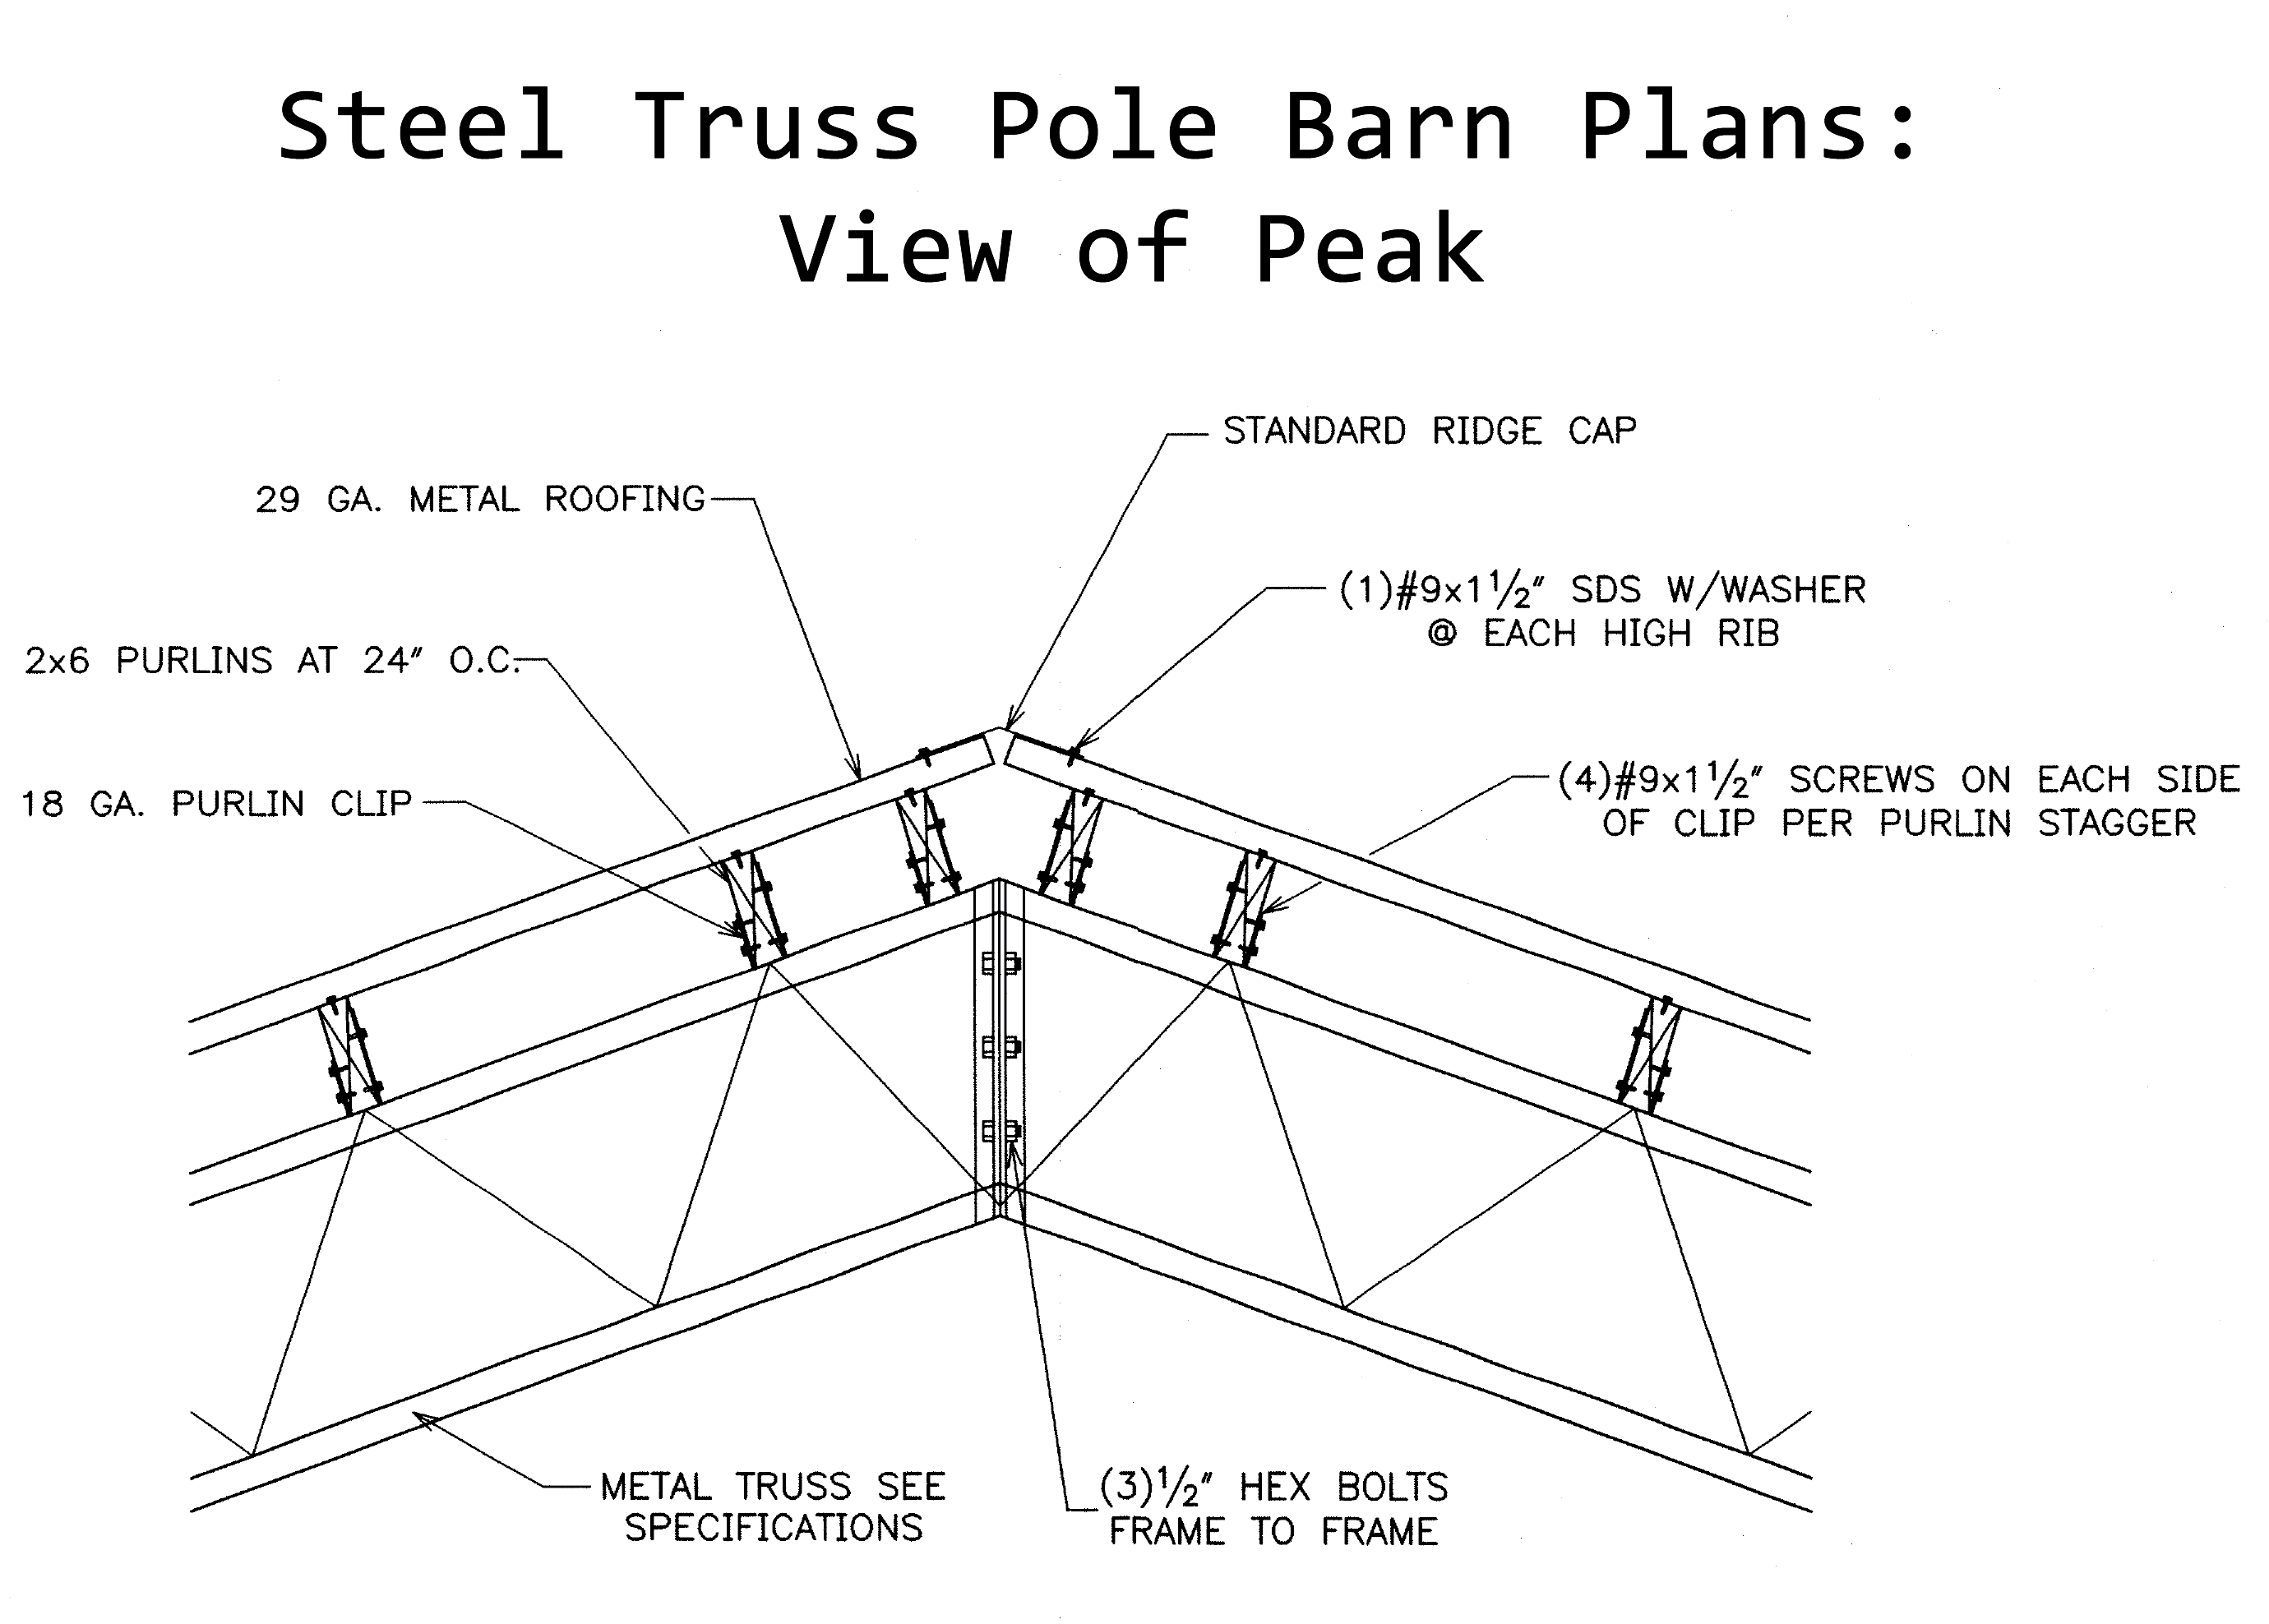 Engineered plans for pole barn joy studio design gallery for Pole barn blueprints free